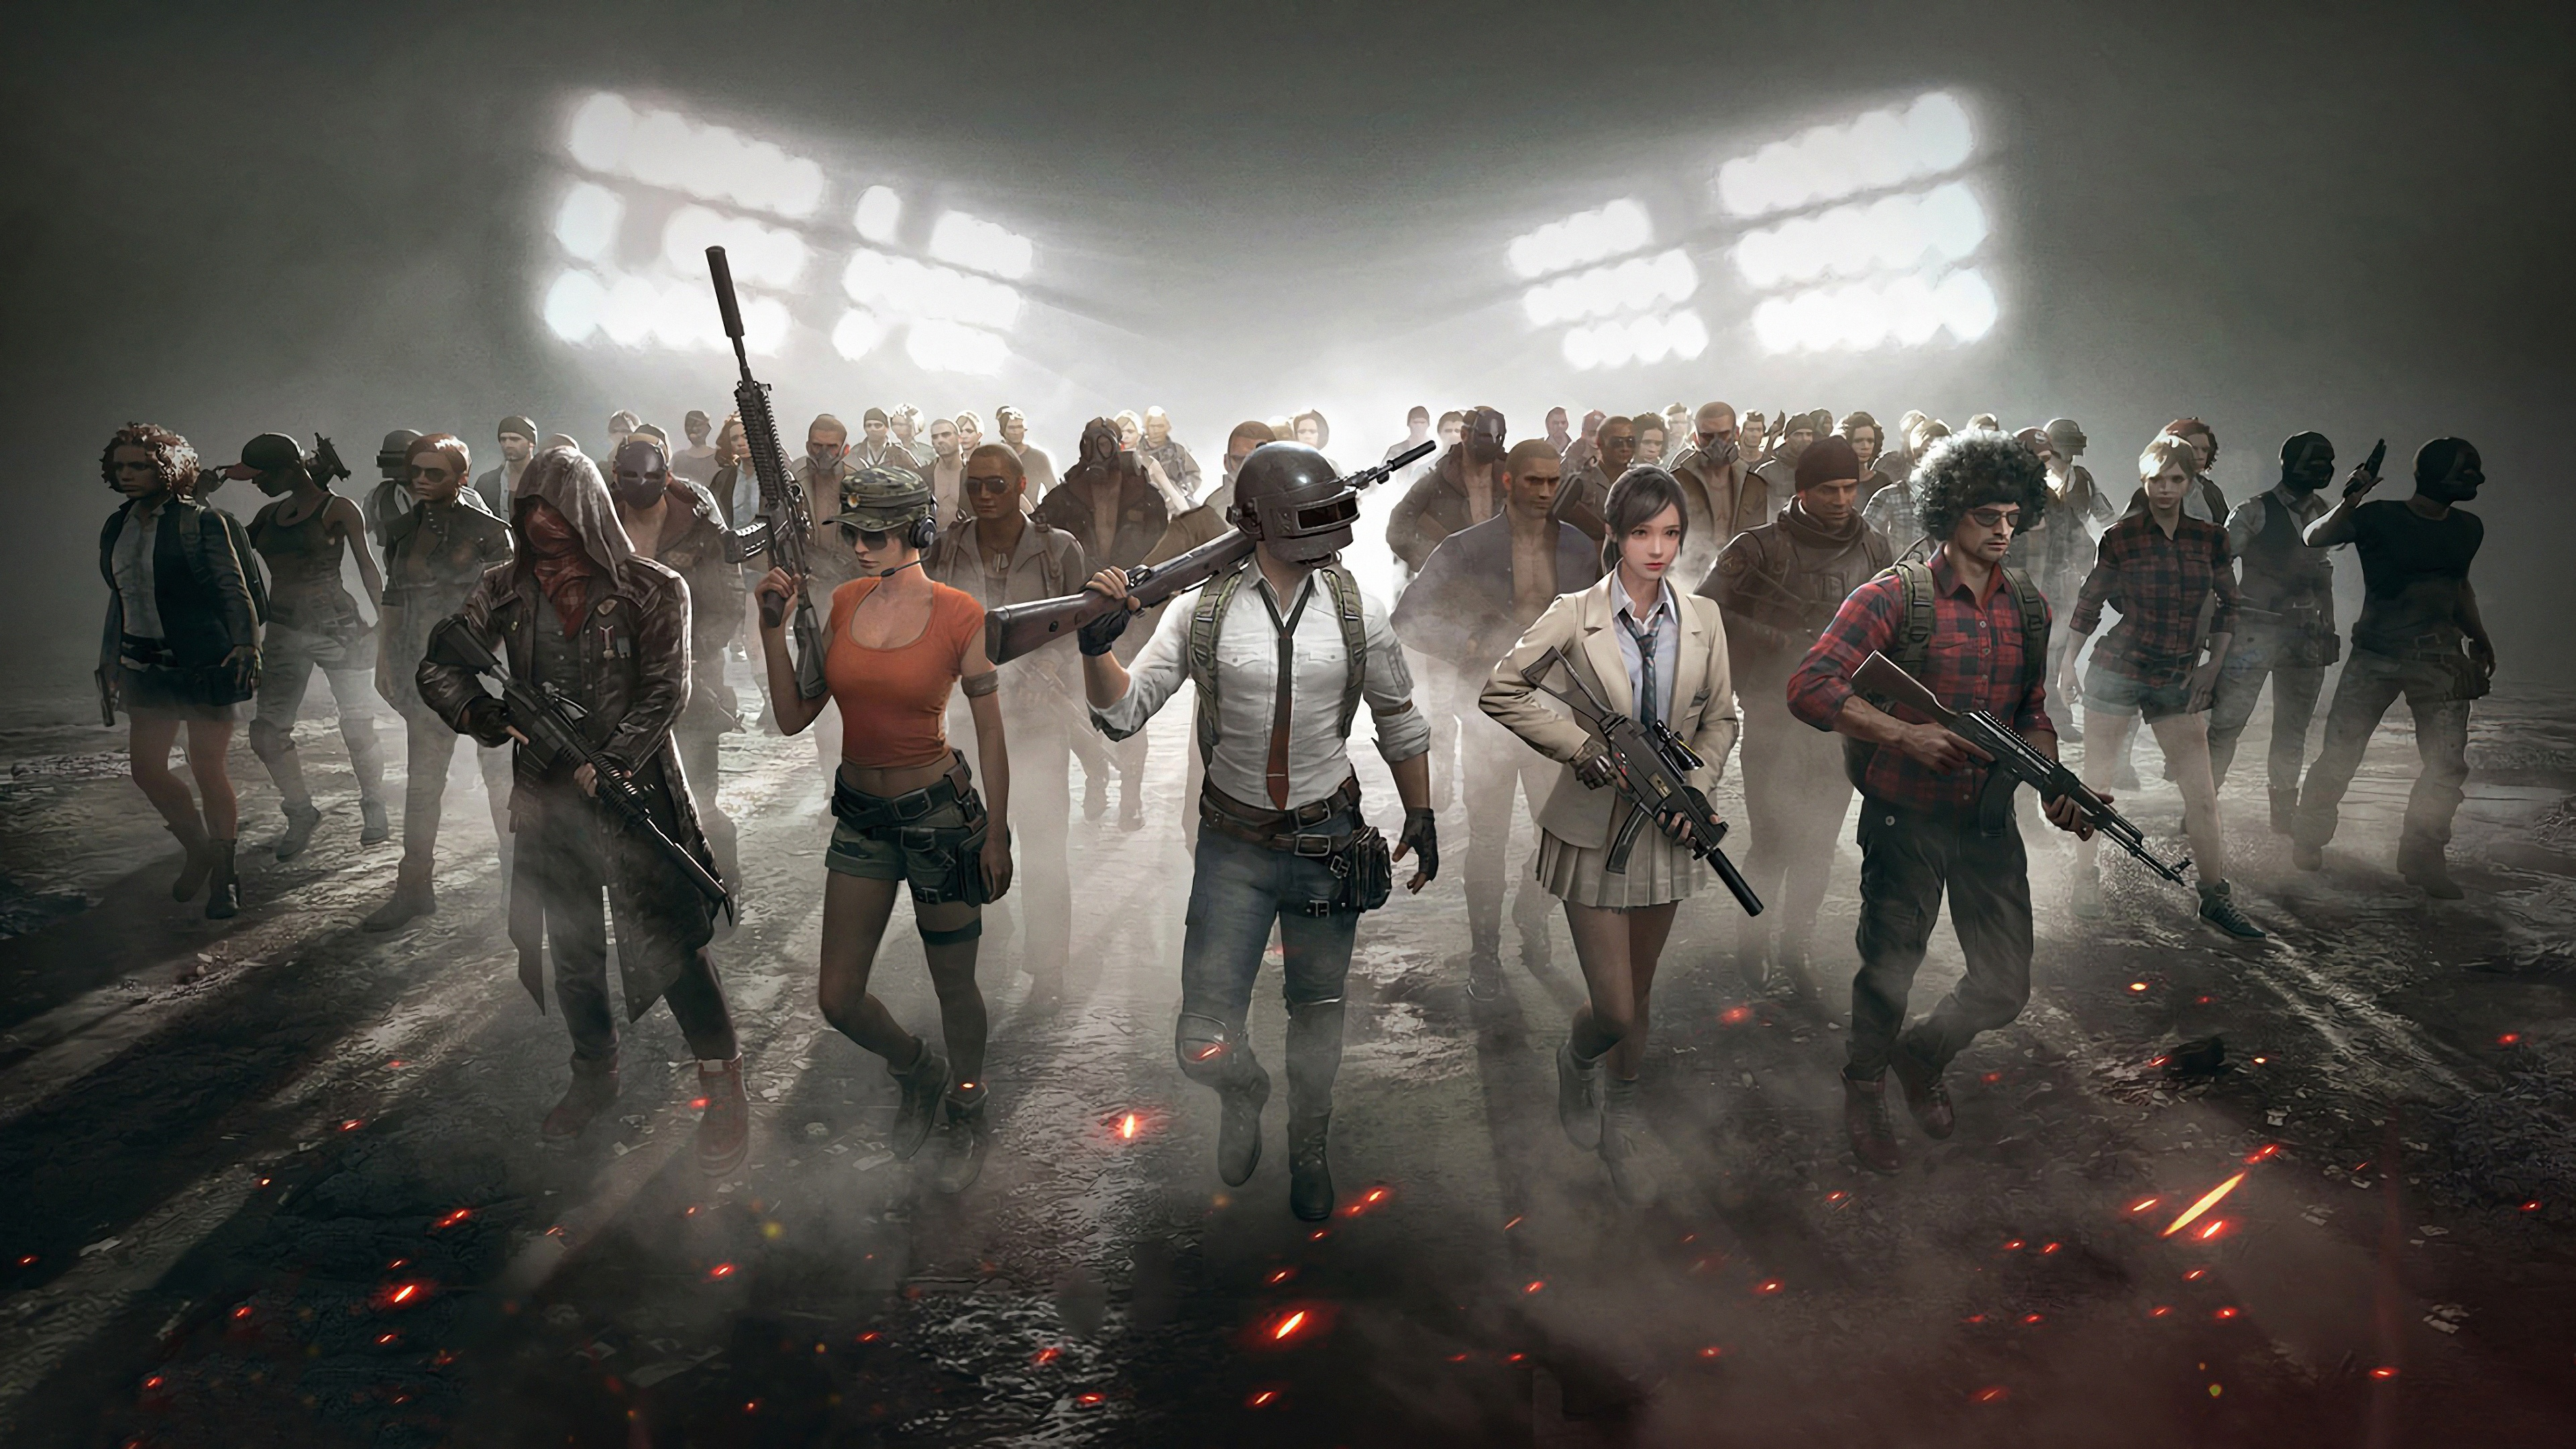 2048x1152 Pubg Characters 4k 2048x1152 Resolution HD 4k